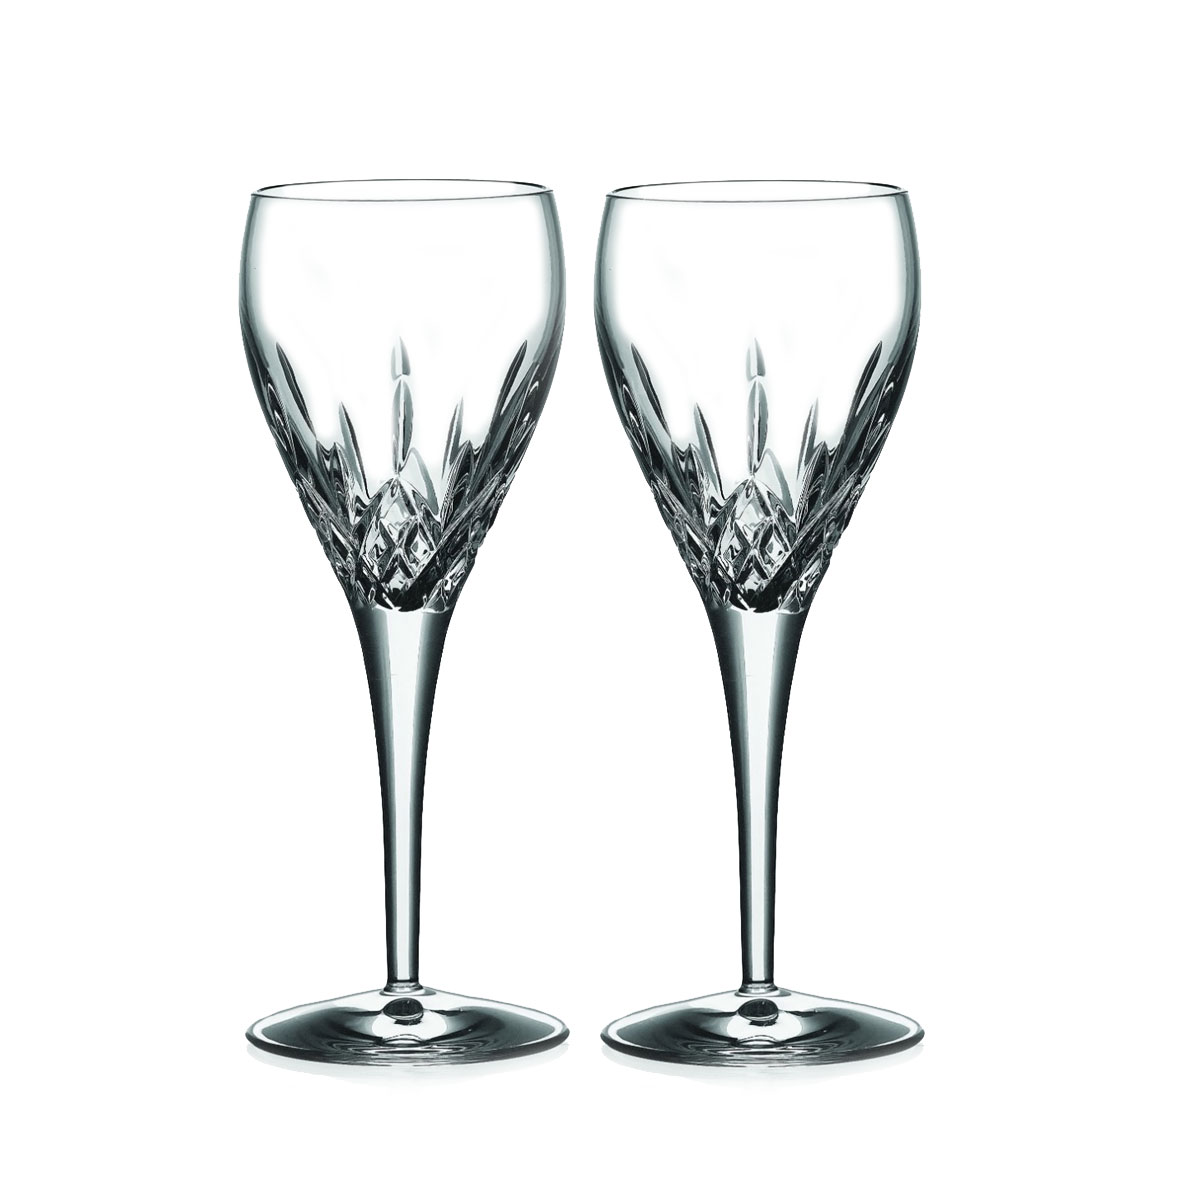 Galway Crystal Longford Wine, Pair